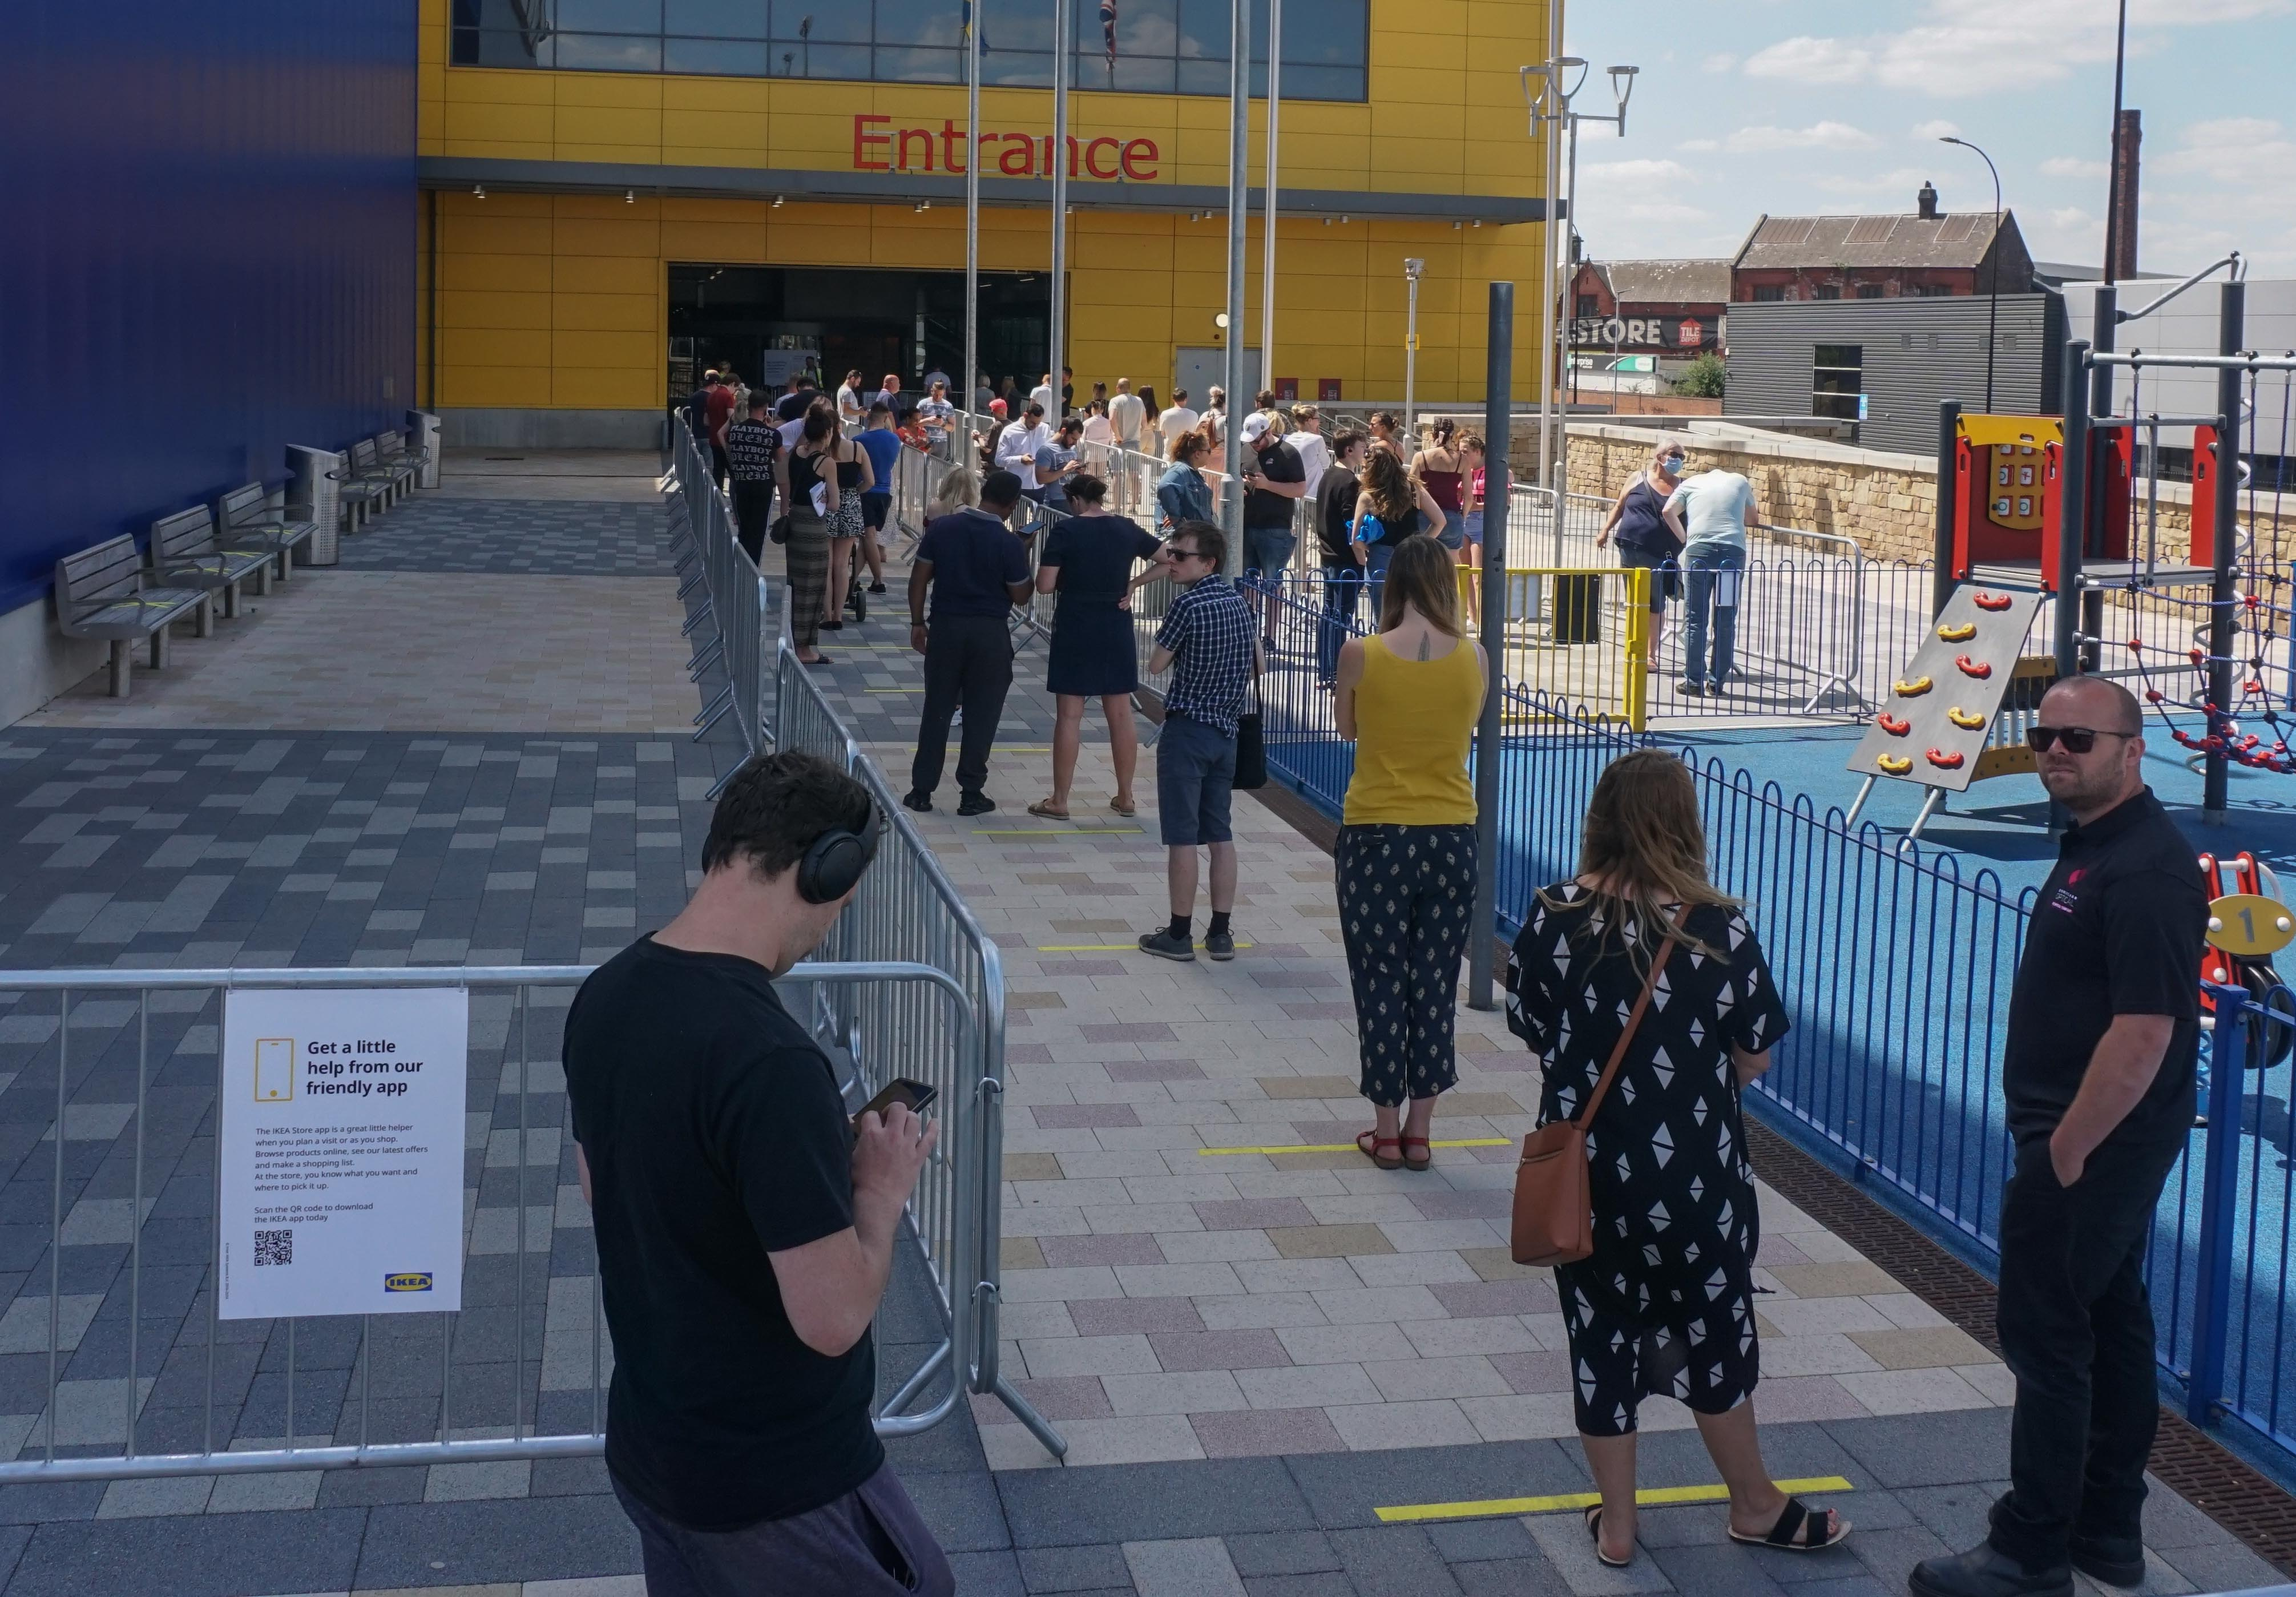 Shoppers observe social distancing as they wait to enter an IKEA store in sheffield , on 1st June 2020. (Photo by Giannis Alexopoulos/NurPhoto via Getty Images)